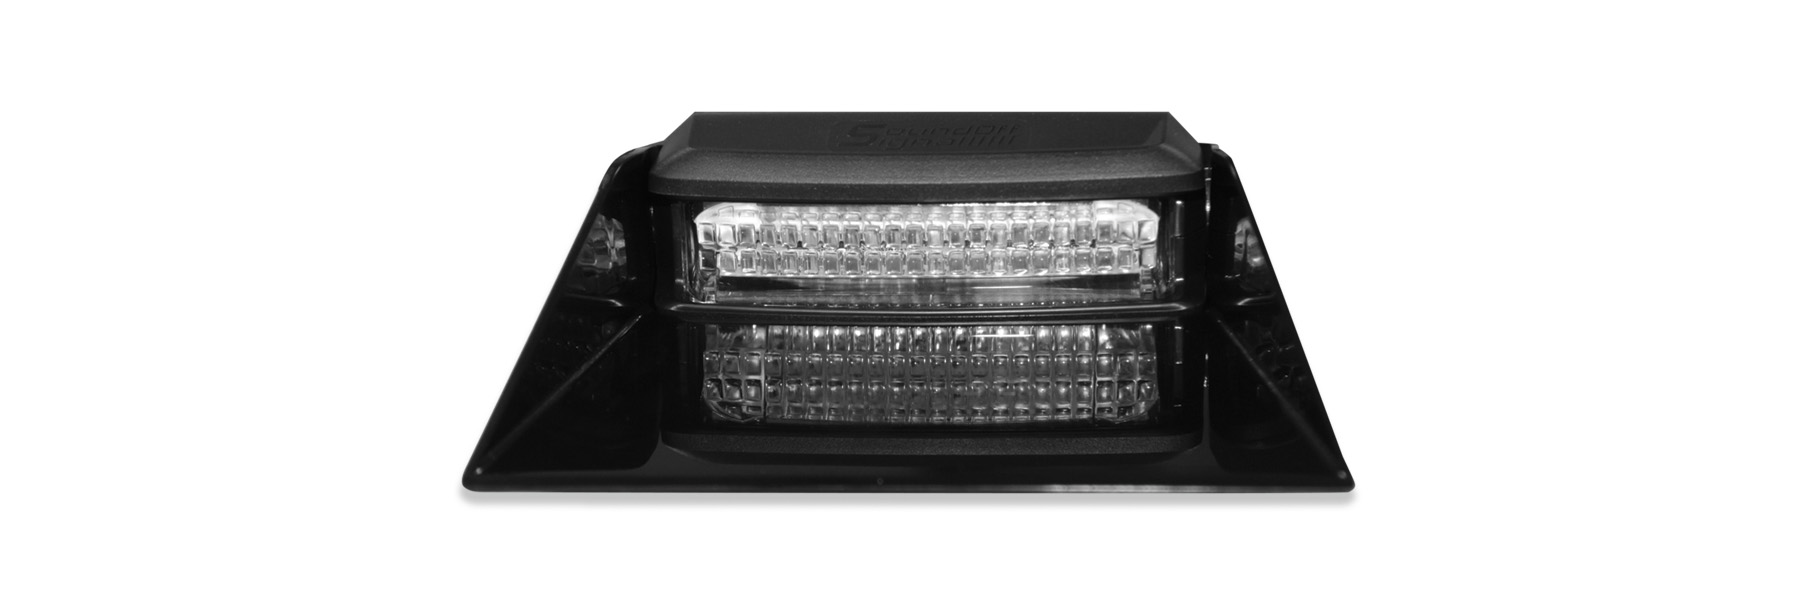 nFORCE® LED Windshield Lights Product Image